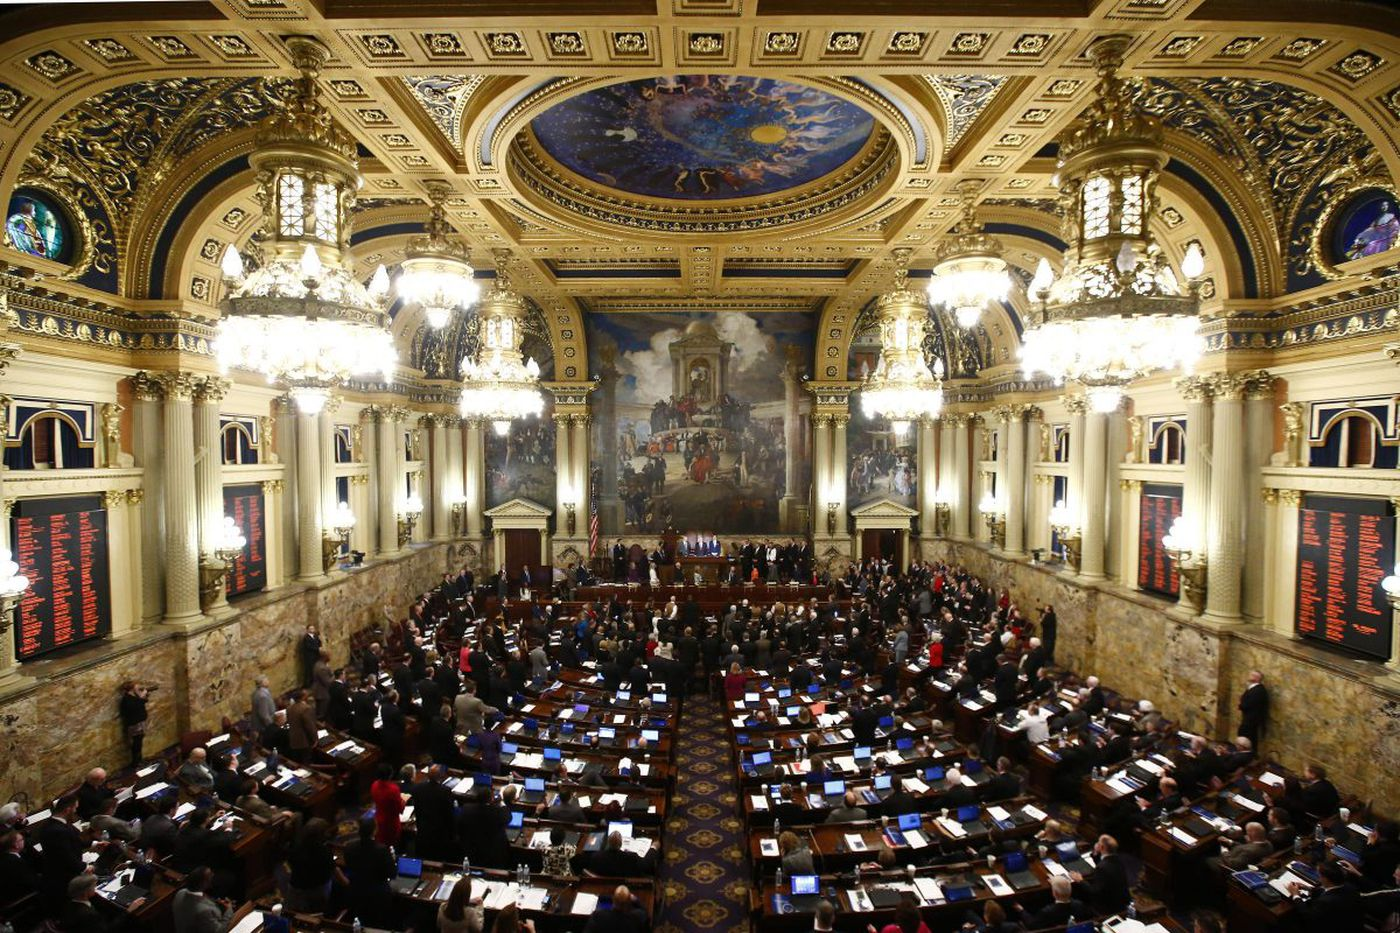 Pa. legislators should show receipts for 'per diem' payments | Editorial